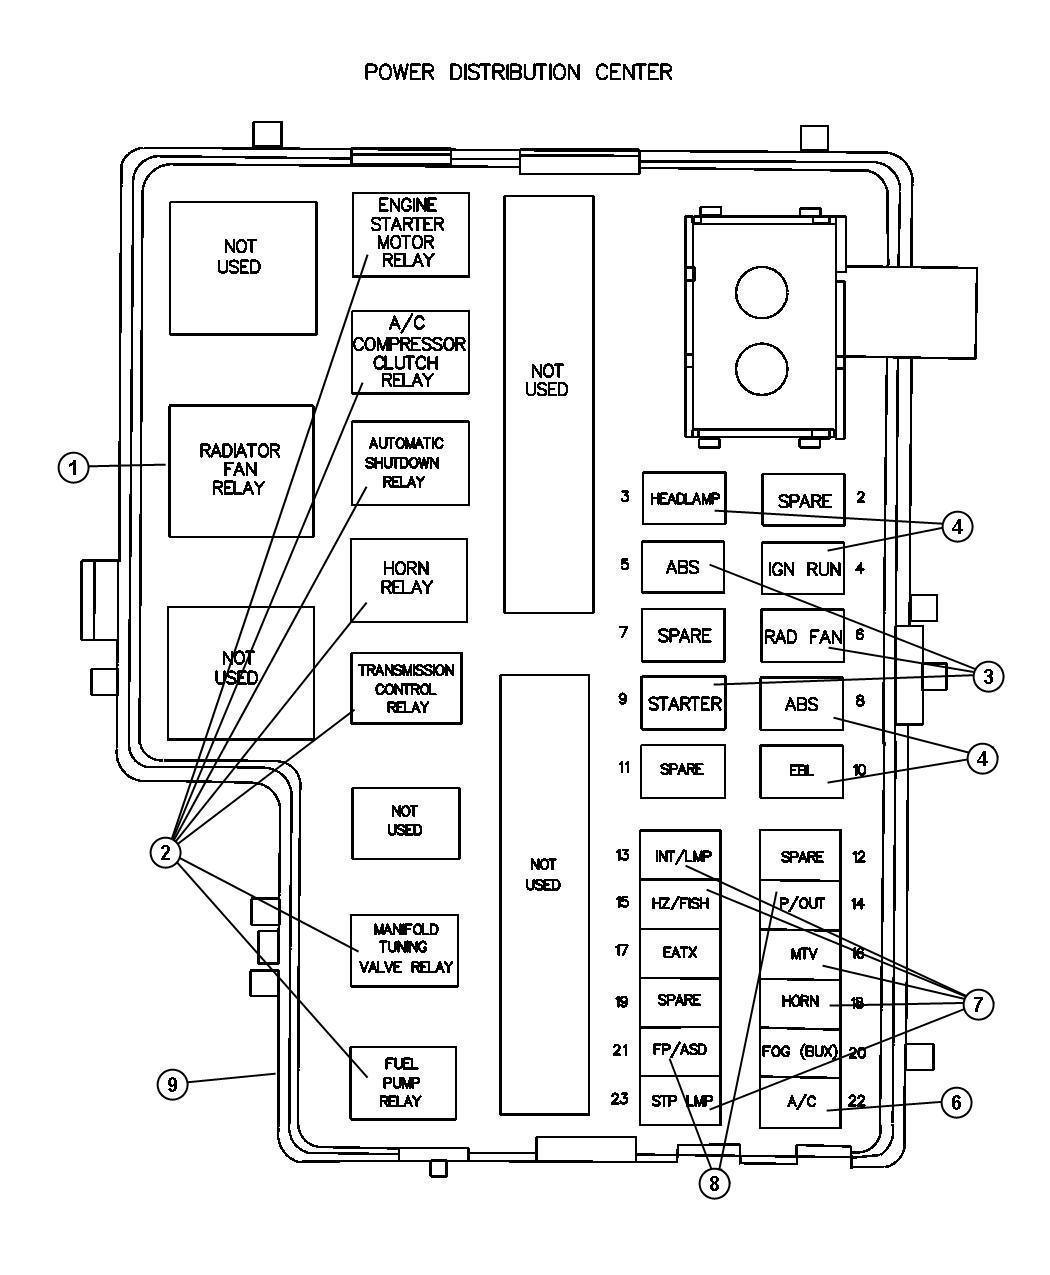 00i81518 wiring diagrams for mack trucks the wiring diagram readingrat net Ford Fuse Box Diagram at n-0.co